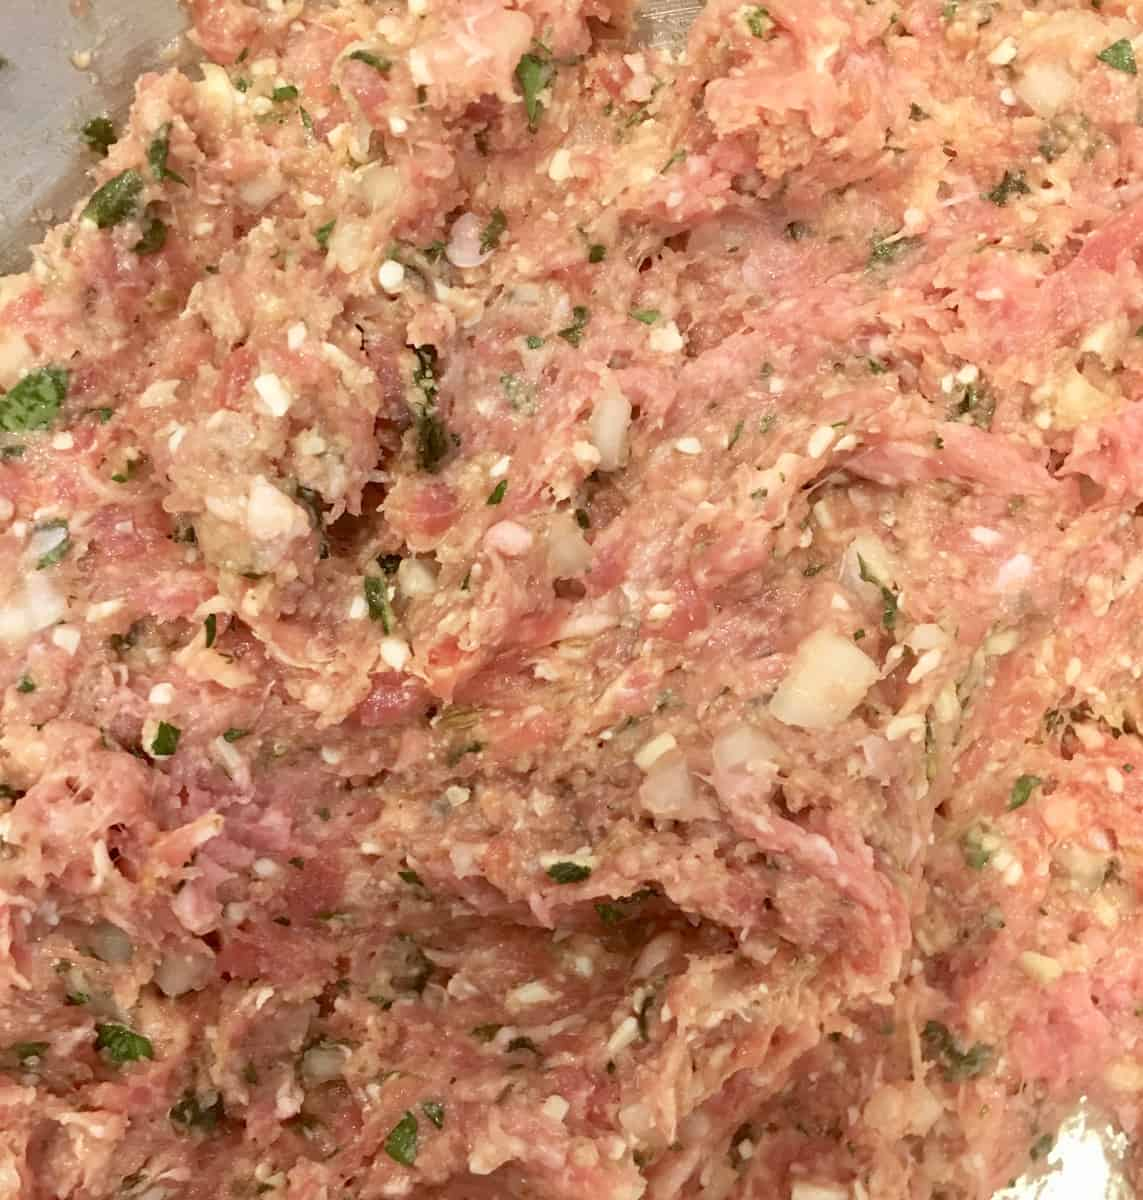 close up of raw meat for the turkey meatballs.